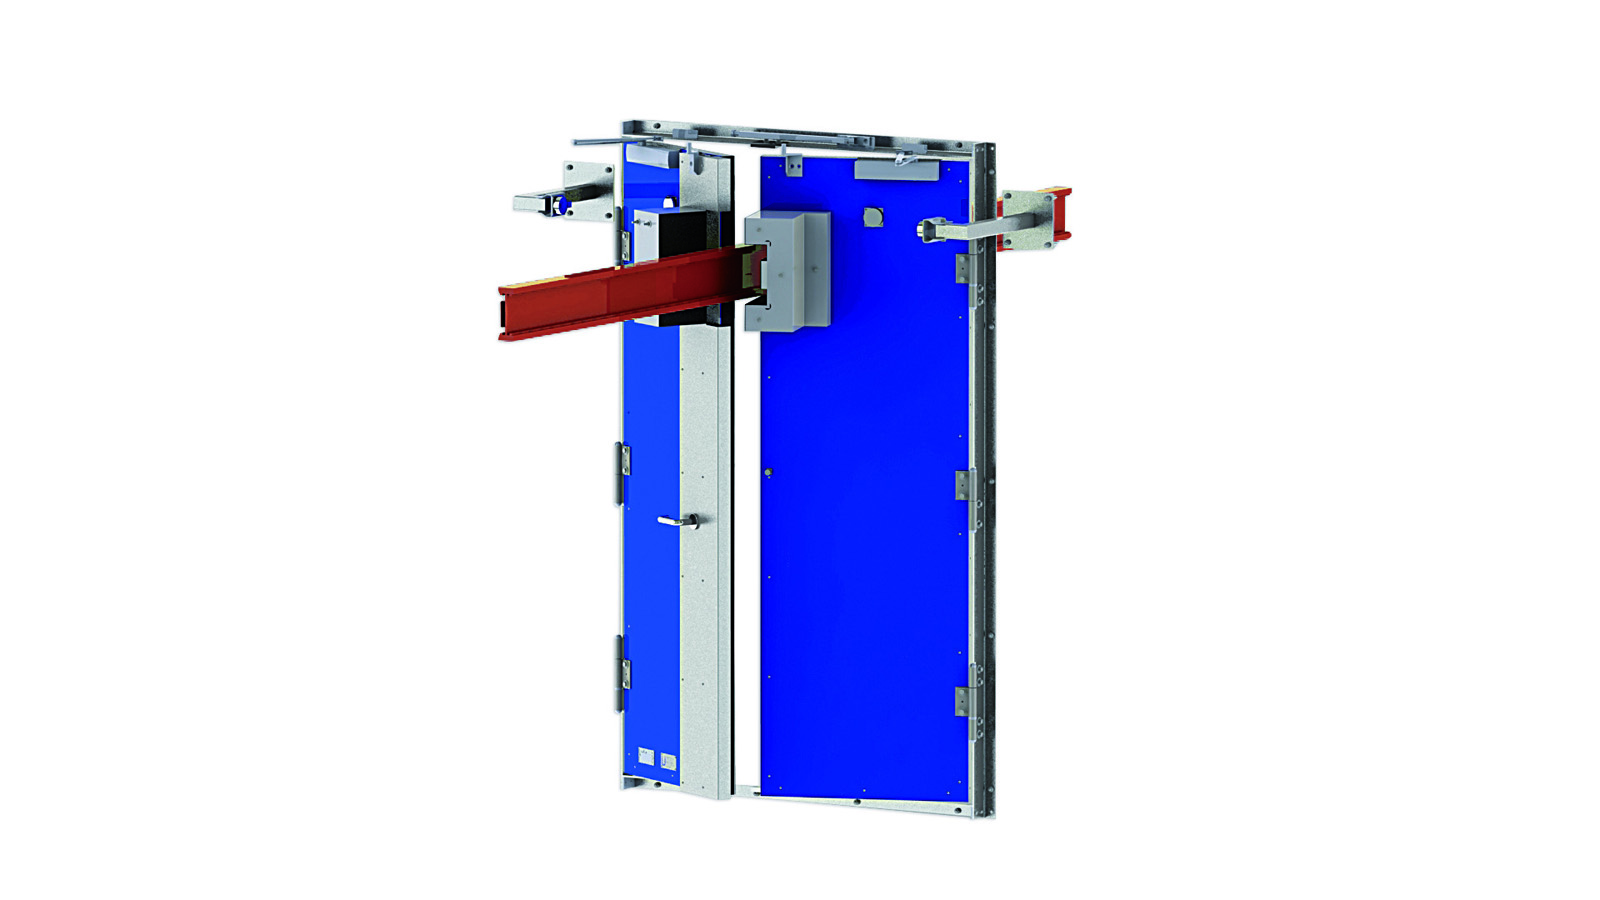 Fire Doors For Conveyors Easy Systems